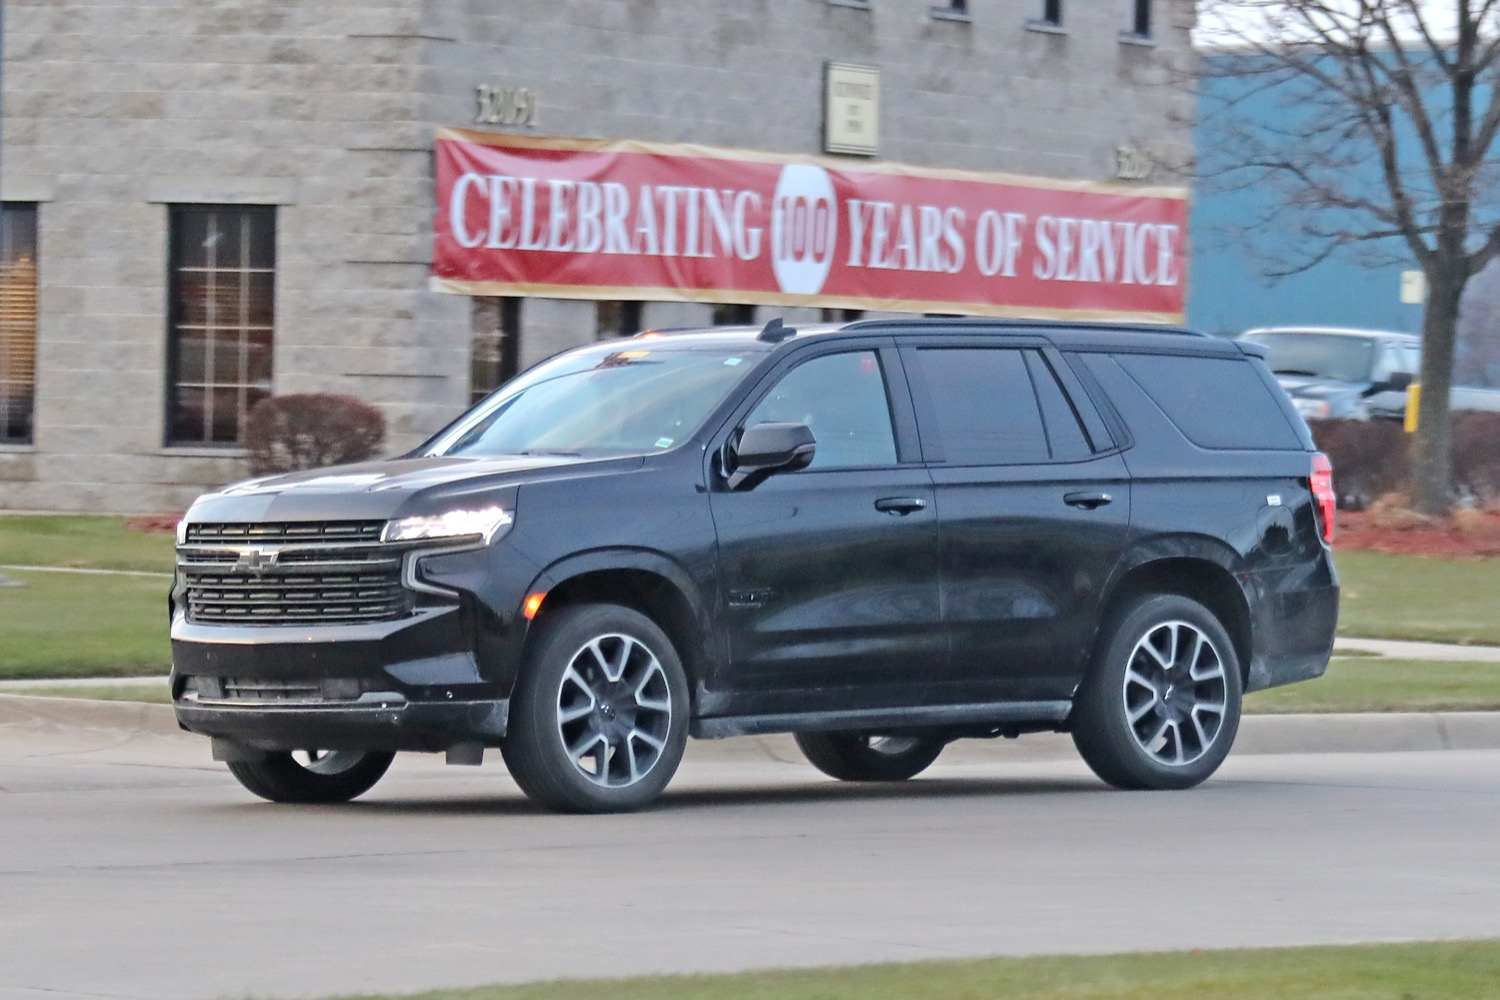 2021 Chevrolet Tahoe Rst On The Street: Live Photo Gallery 2021 Chevrolet Traverse Rs Review, Specs, 0-60